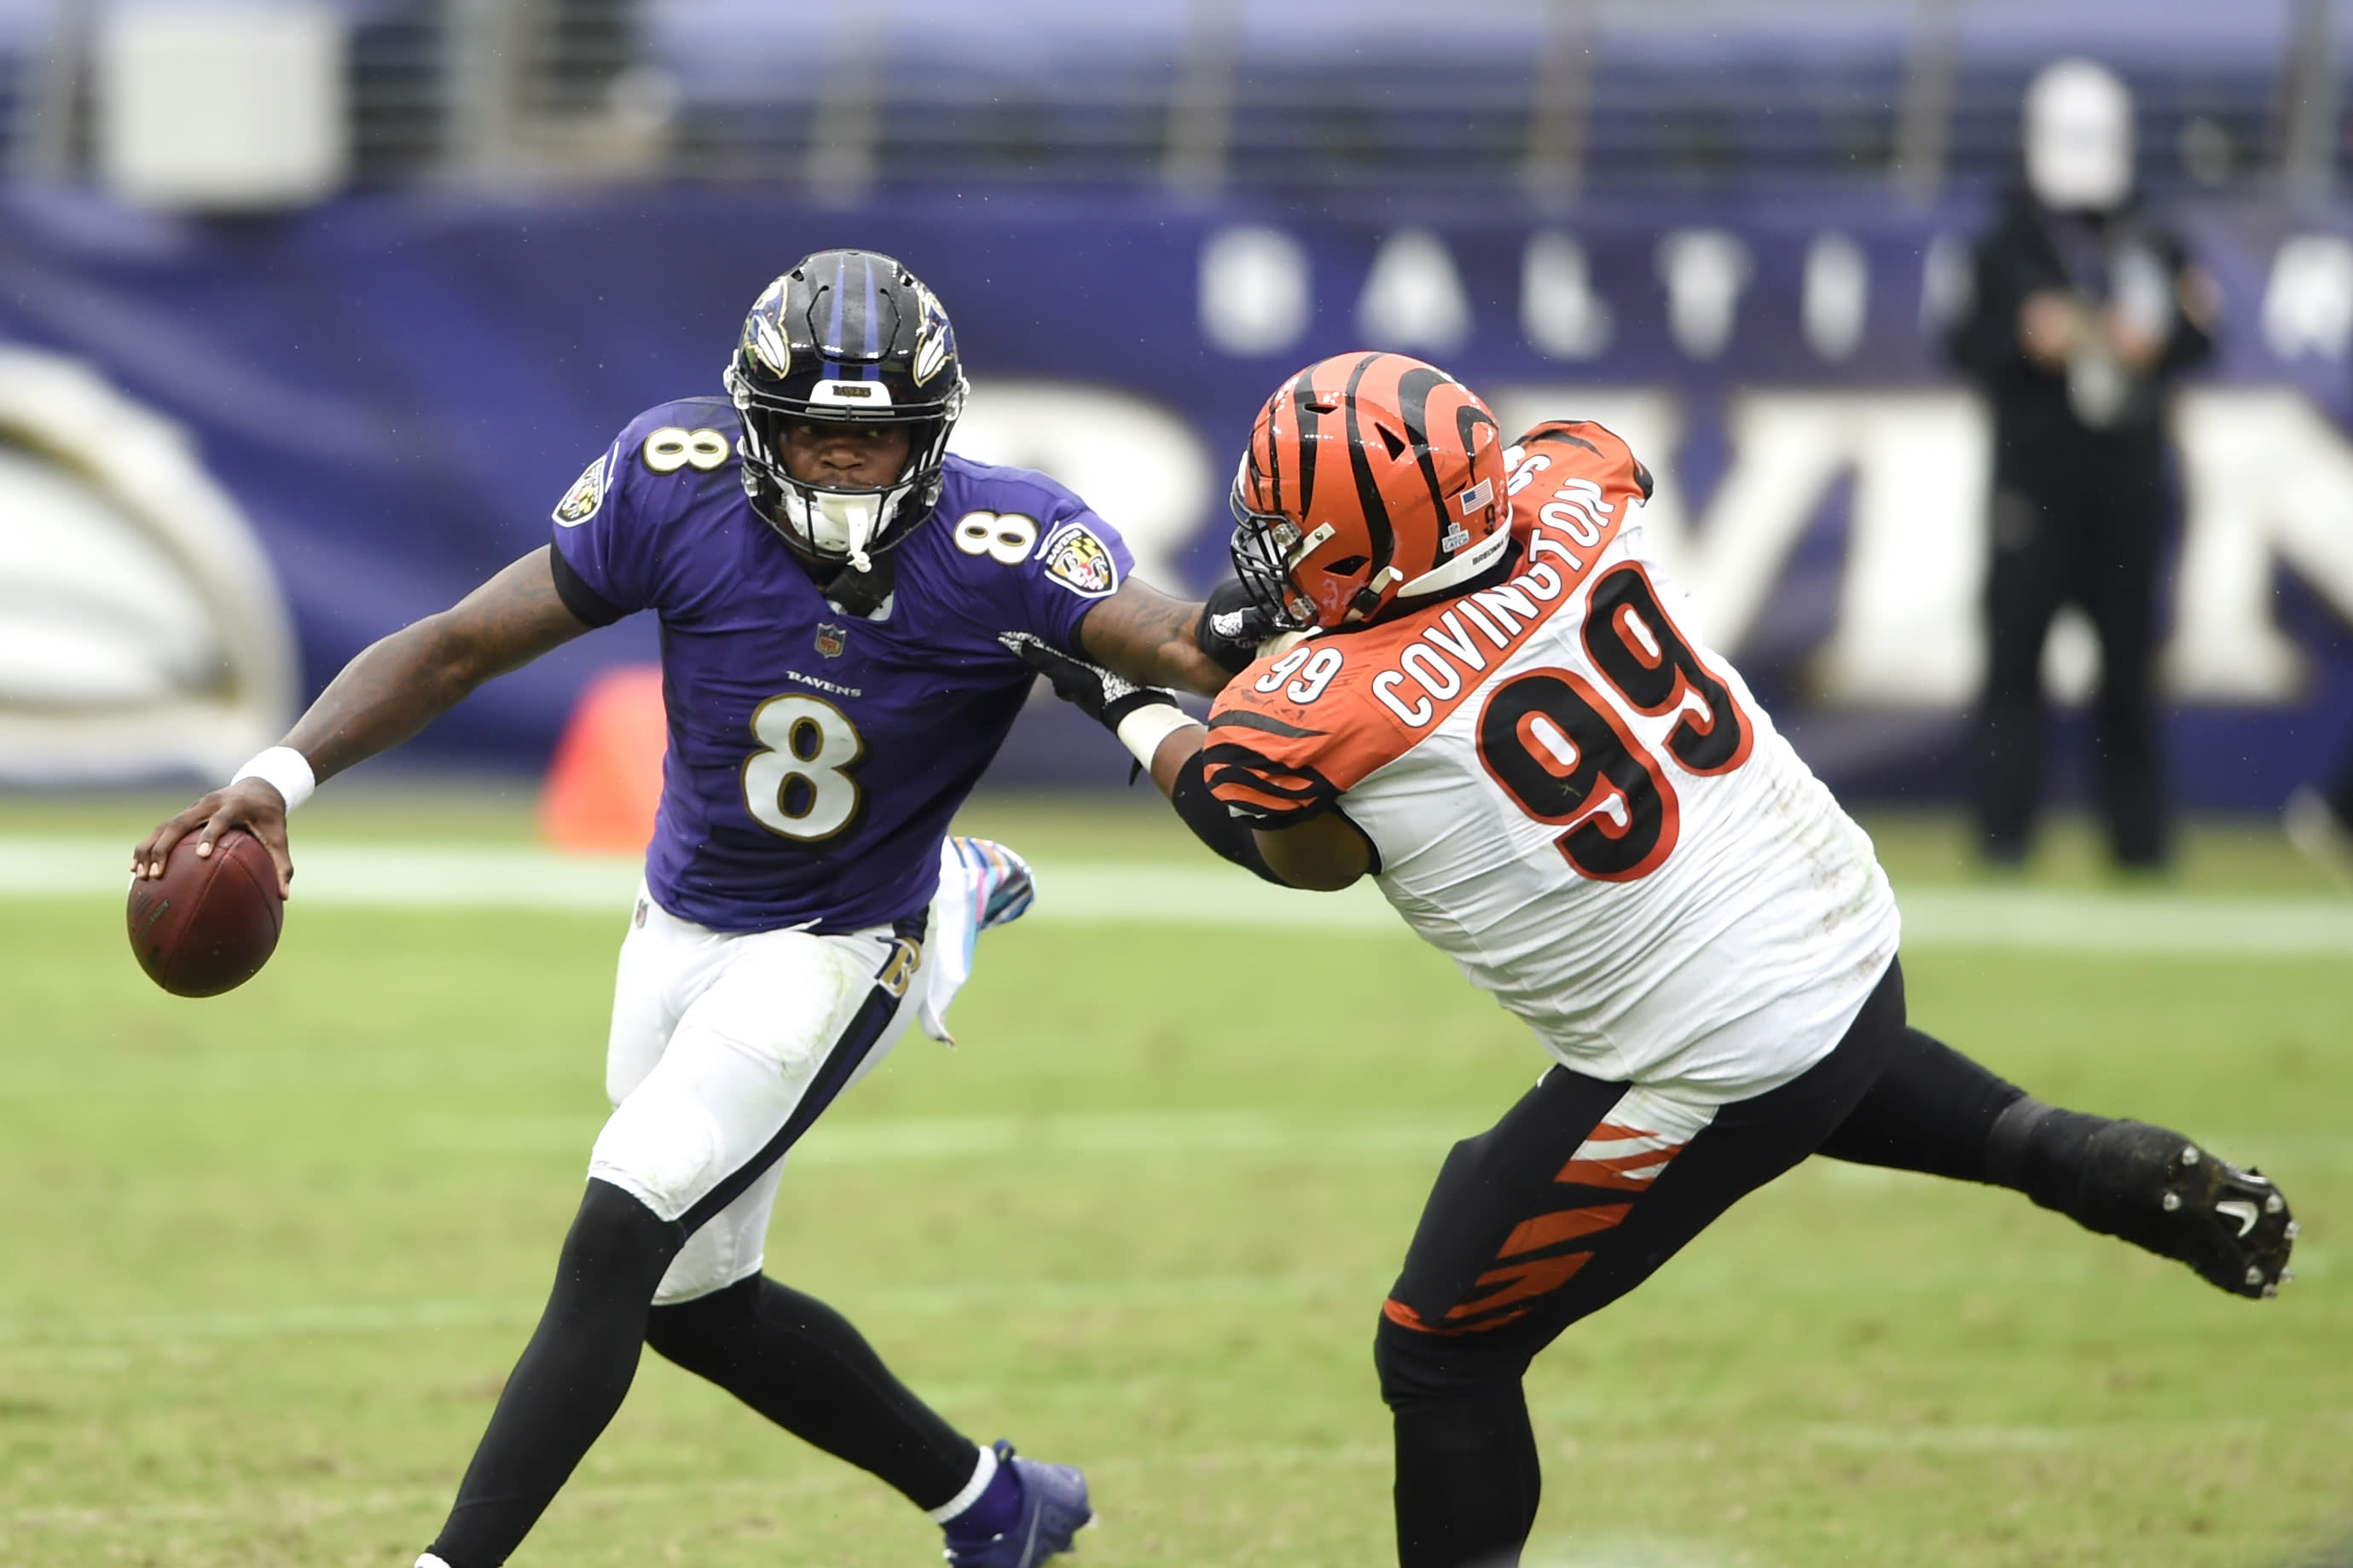 Baltimore Ravens quarterback Lamar Jackson (8) tries to avoid a sack by Cincinnati Bengals defensive tackle Christian Covington (99) during the second half of an NFL football game, Sunday, Oct. 11, 2020, in Baltimore. (AP Photo/Gail Burton)